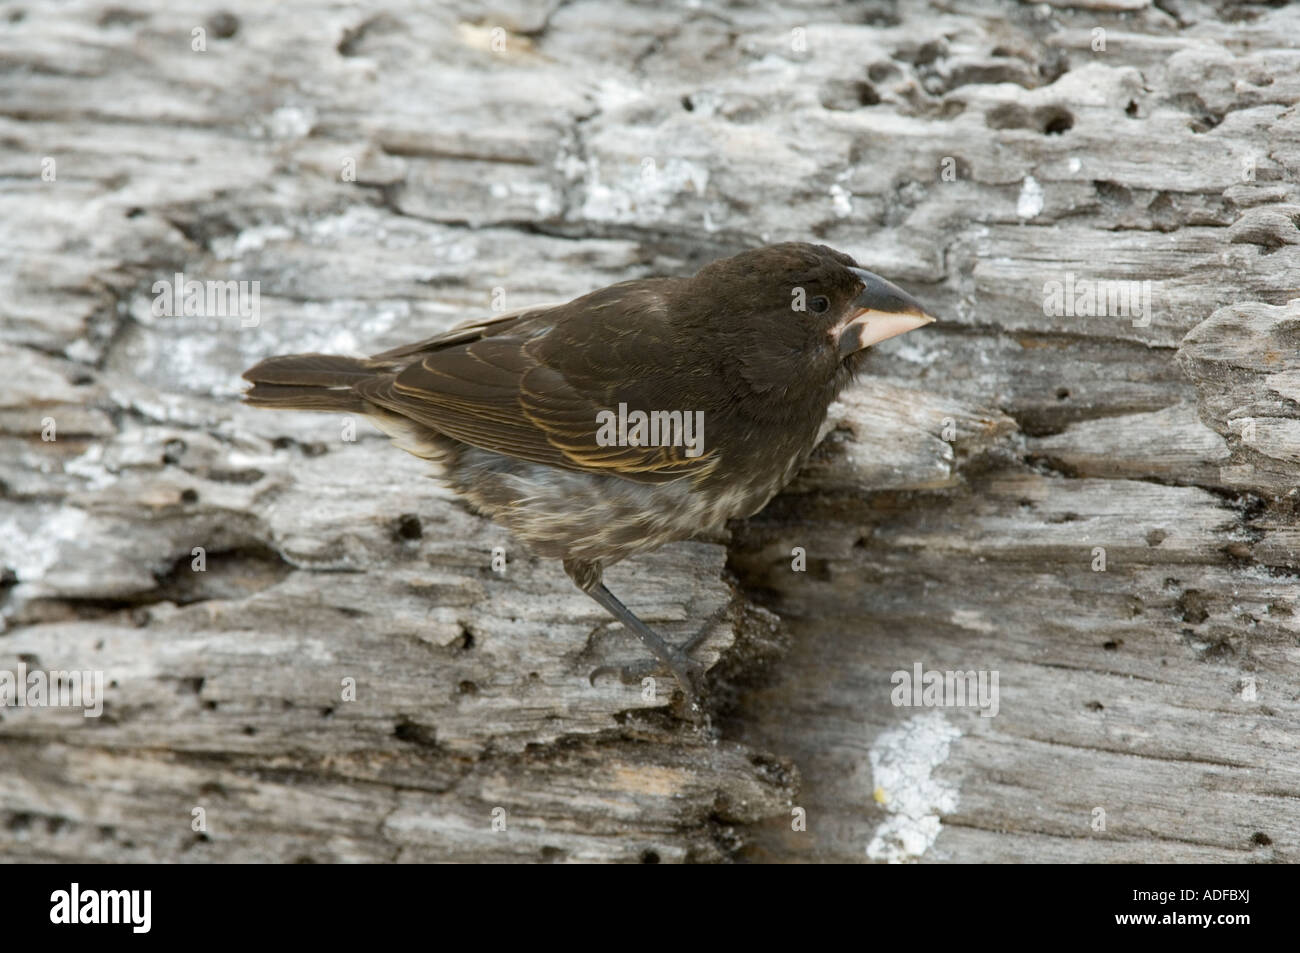 Large Cactus Finch (Geospiza conirostris) Immature searching for food Gardner Bay (Bahia) Espanola Hood Island Galapagos - Stock Image